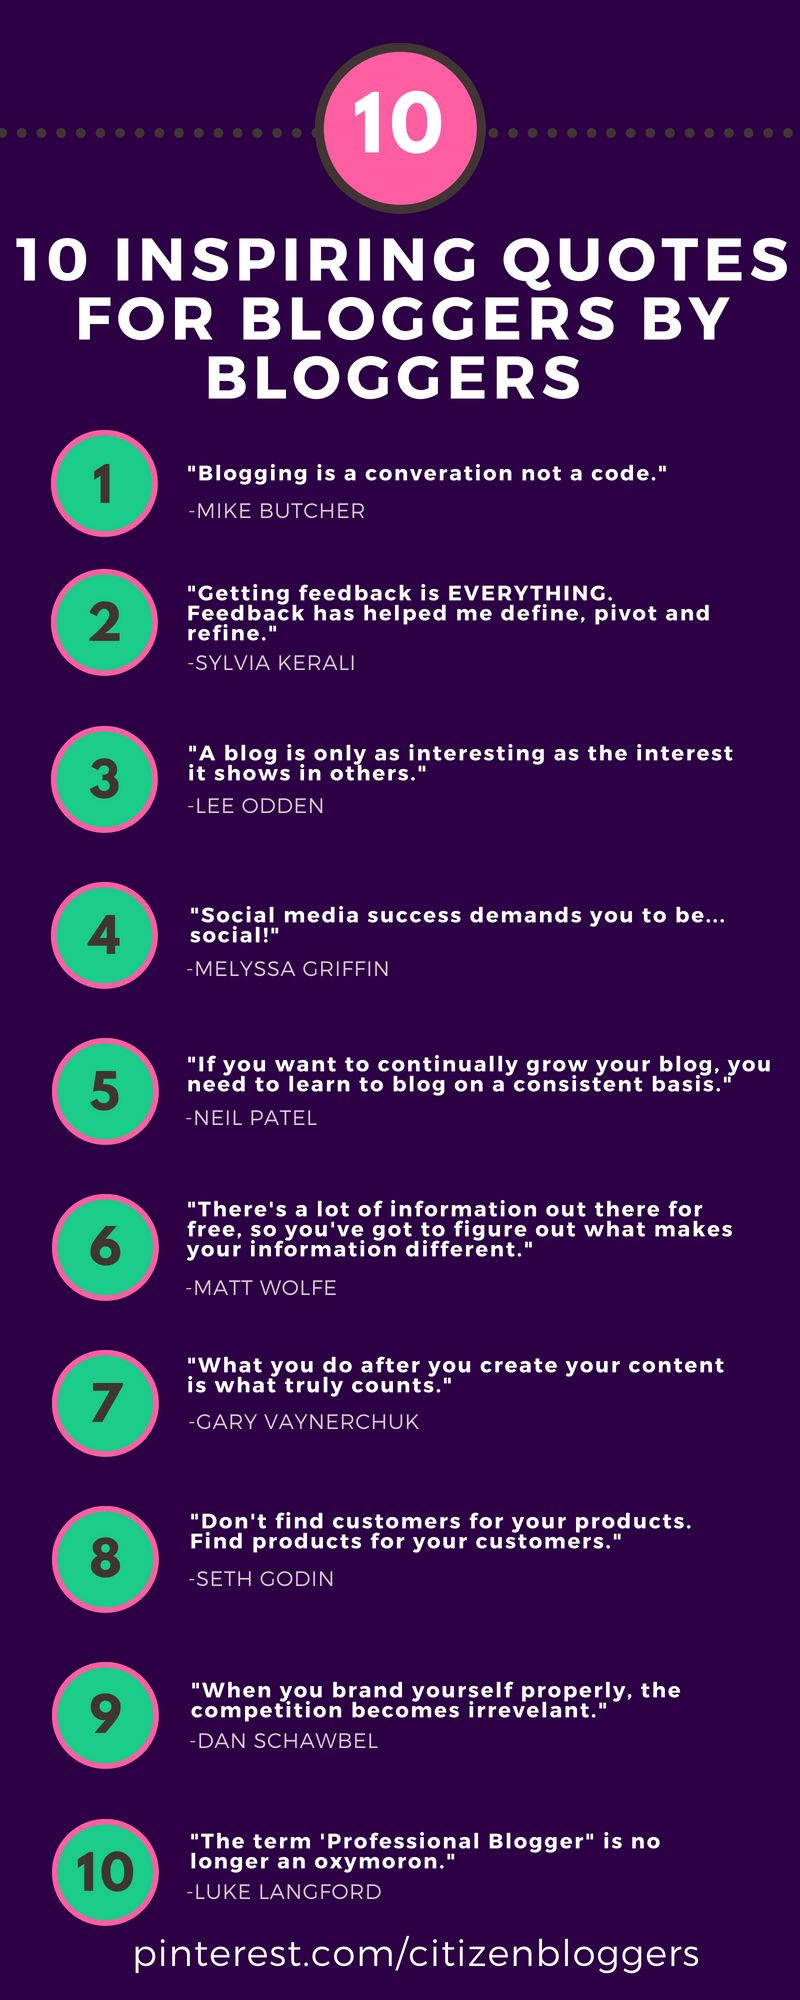 10 blogging quotes from bloggers! These entrepreneurial quotes include from blogging tips, email marketing advice, and entrepreneur inspiration. #entrepreneurquotes #businessquotes